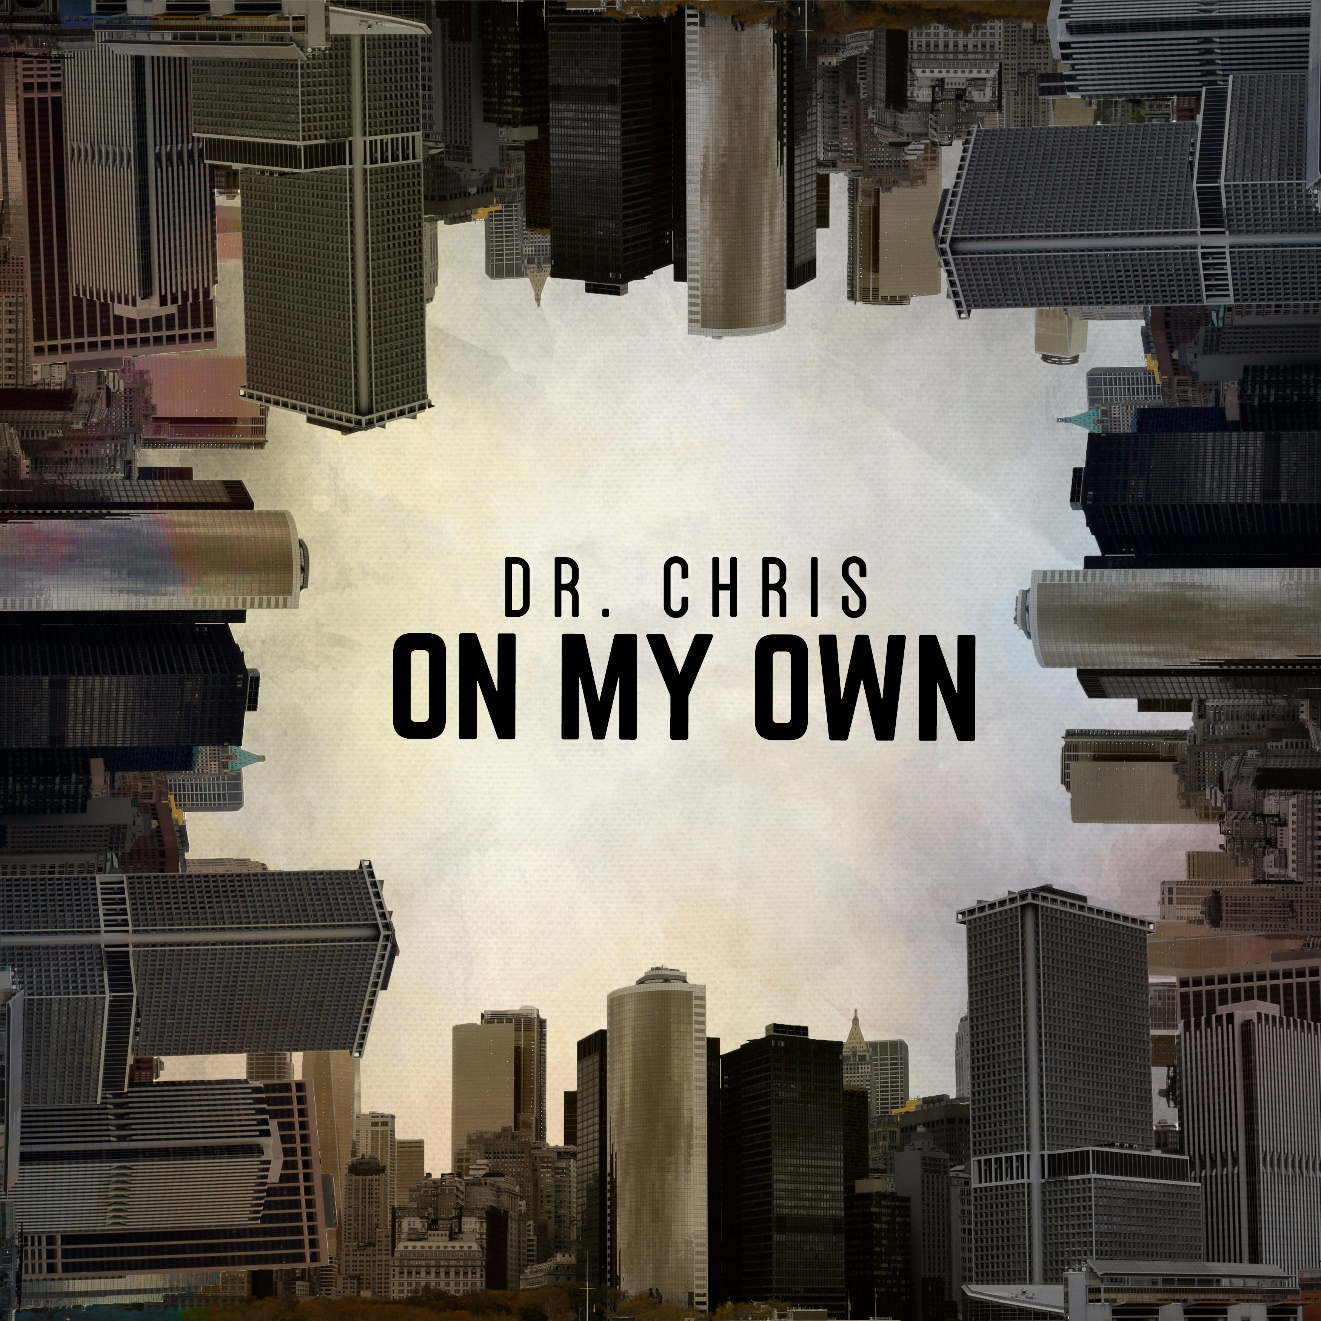 On my own - Dr. Chris